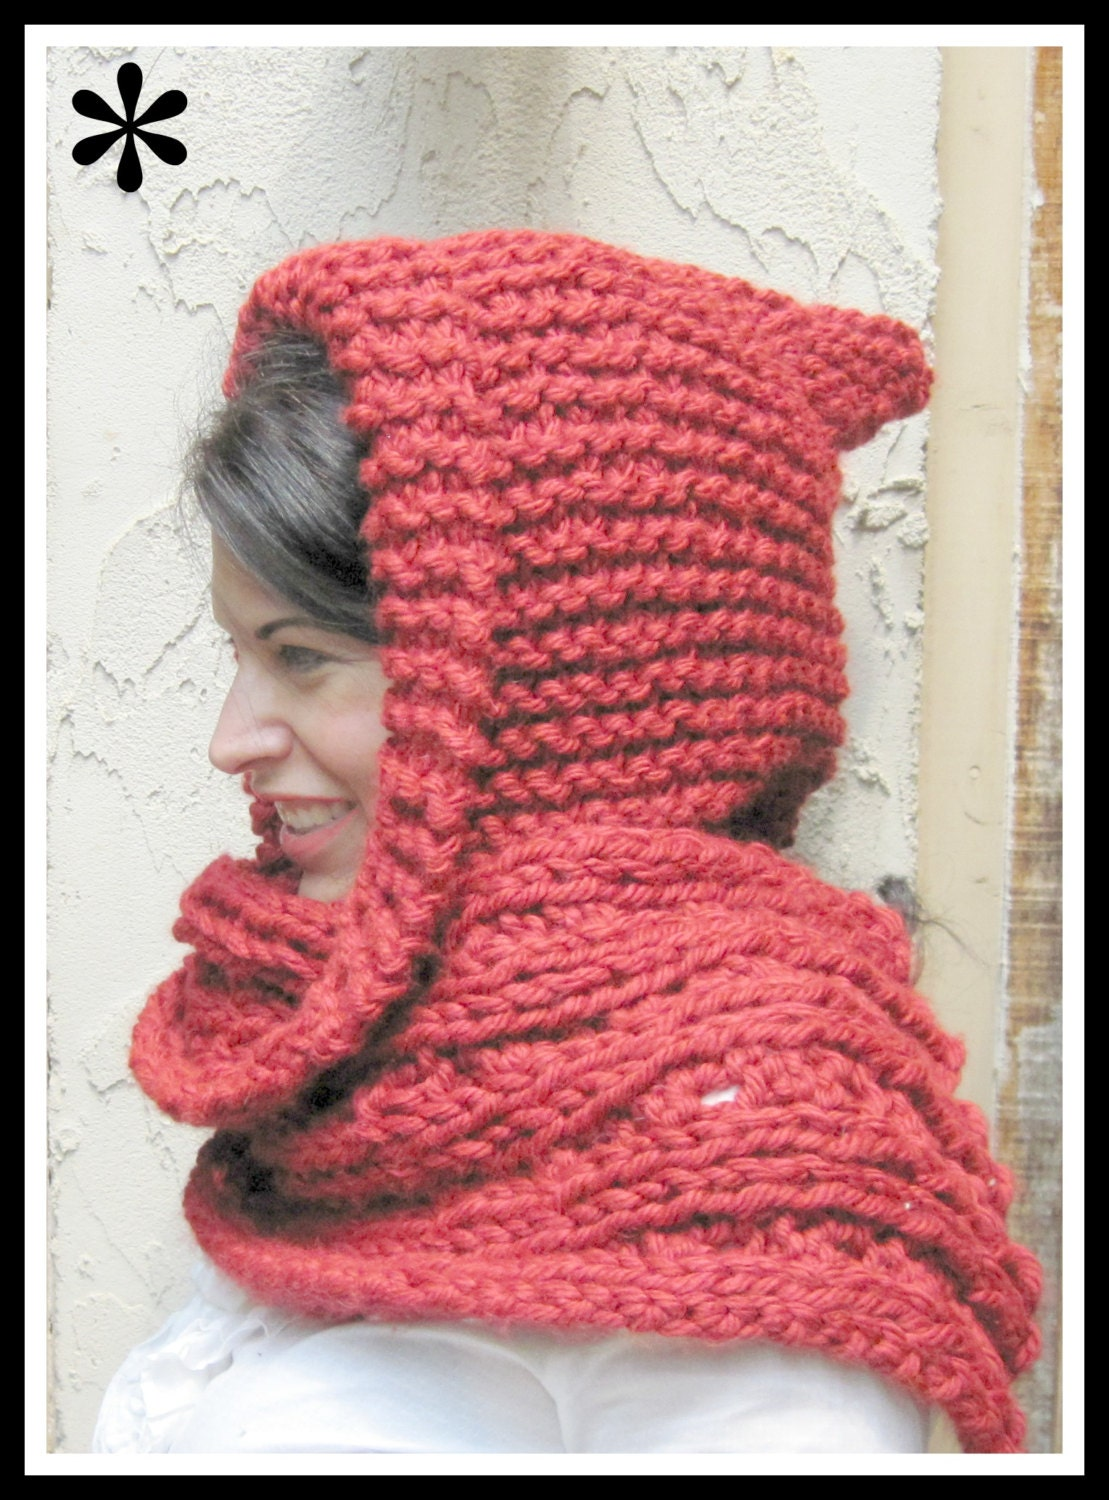 Knitting Patterns Scarf Bulky Yarn : Red Hooded Scarf in Bulky Yarn Knitting Pattern Adult Size